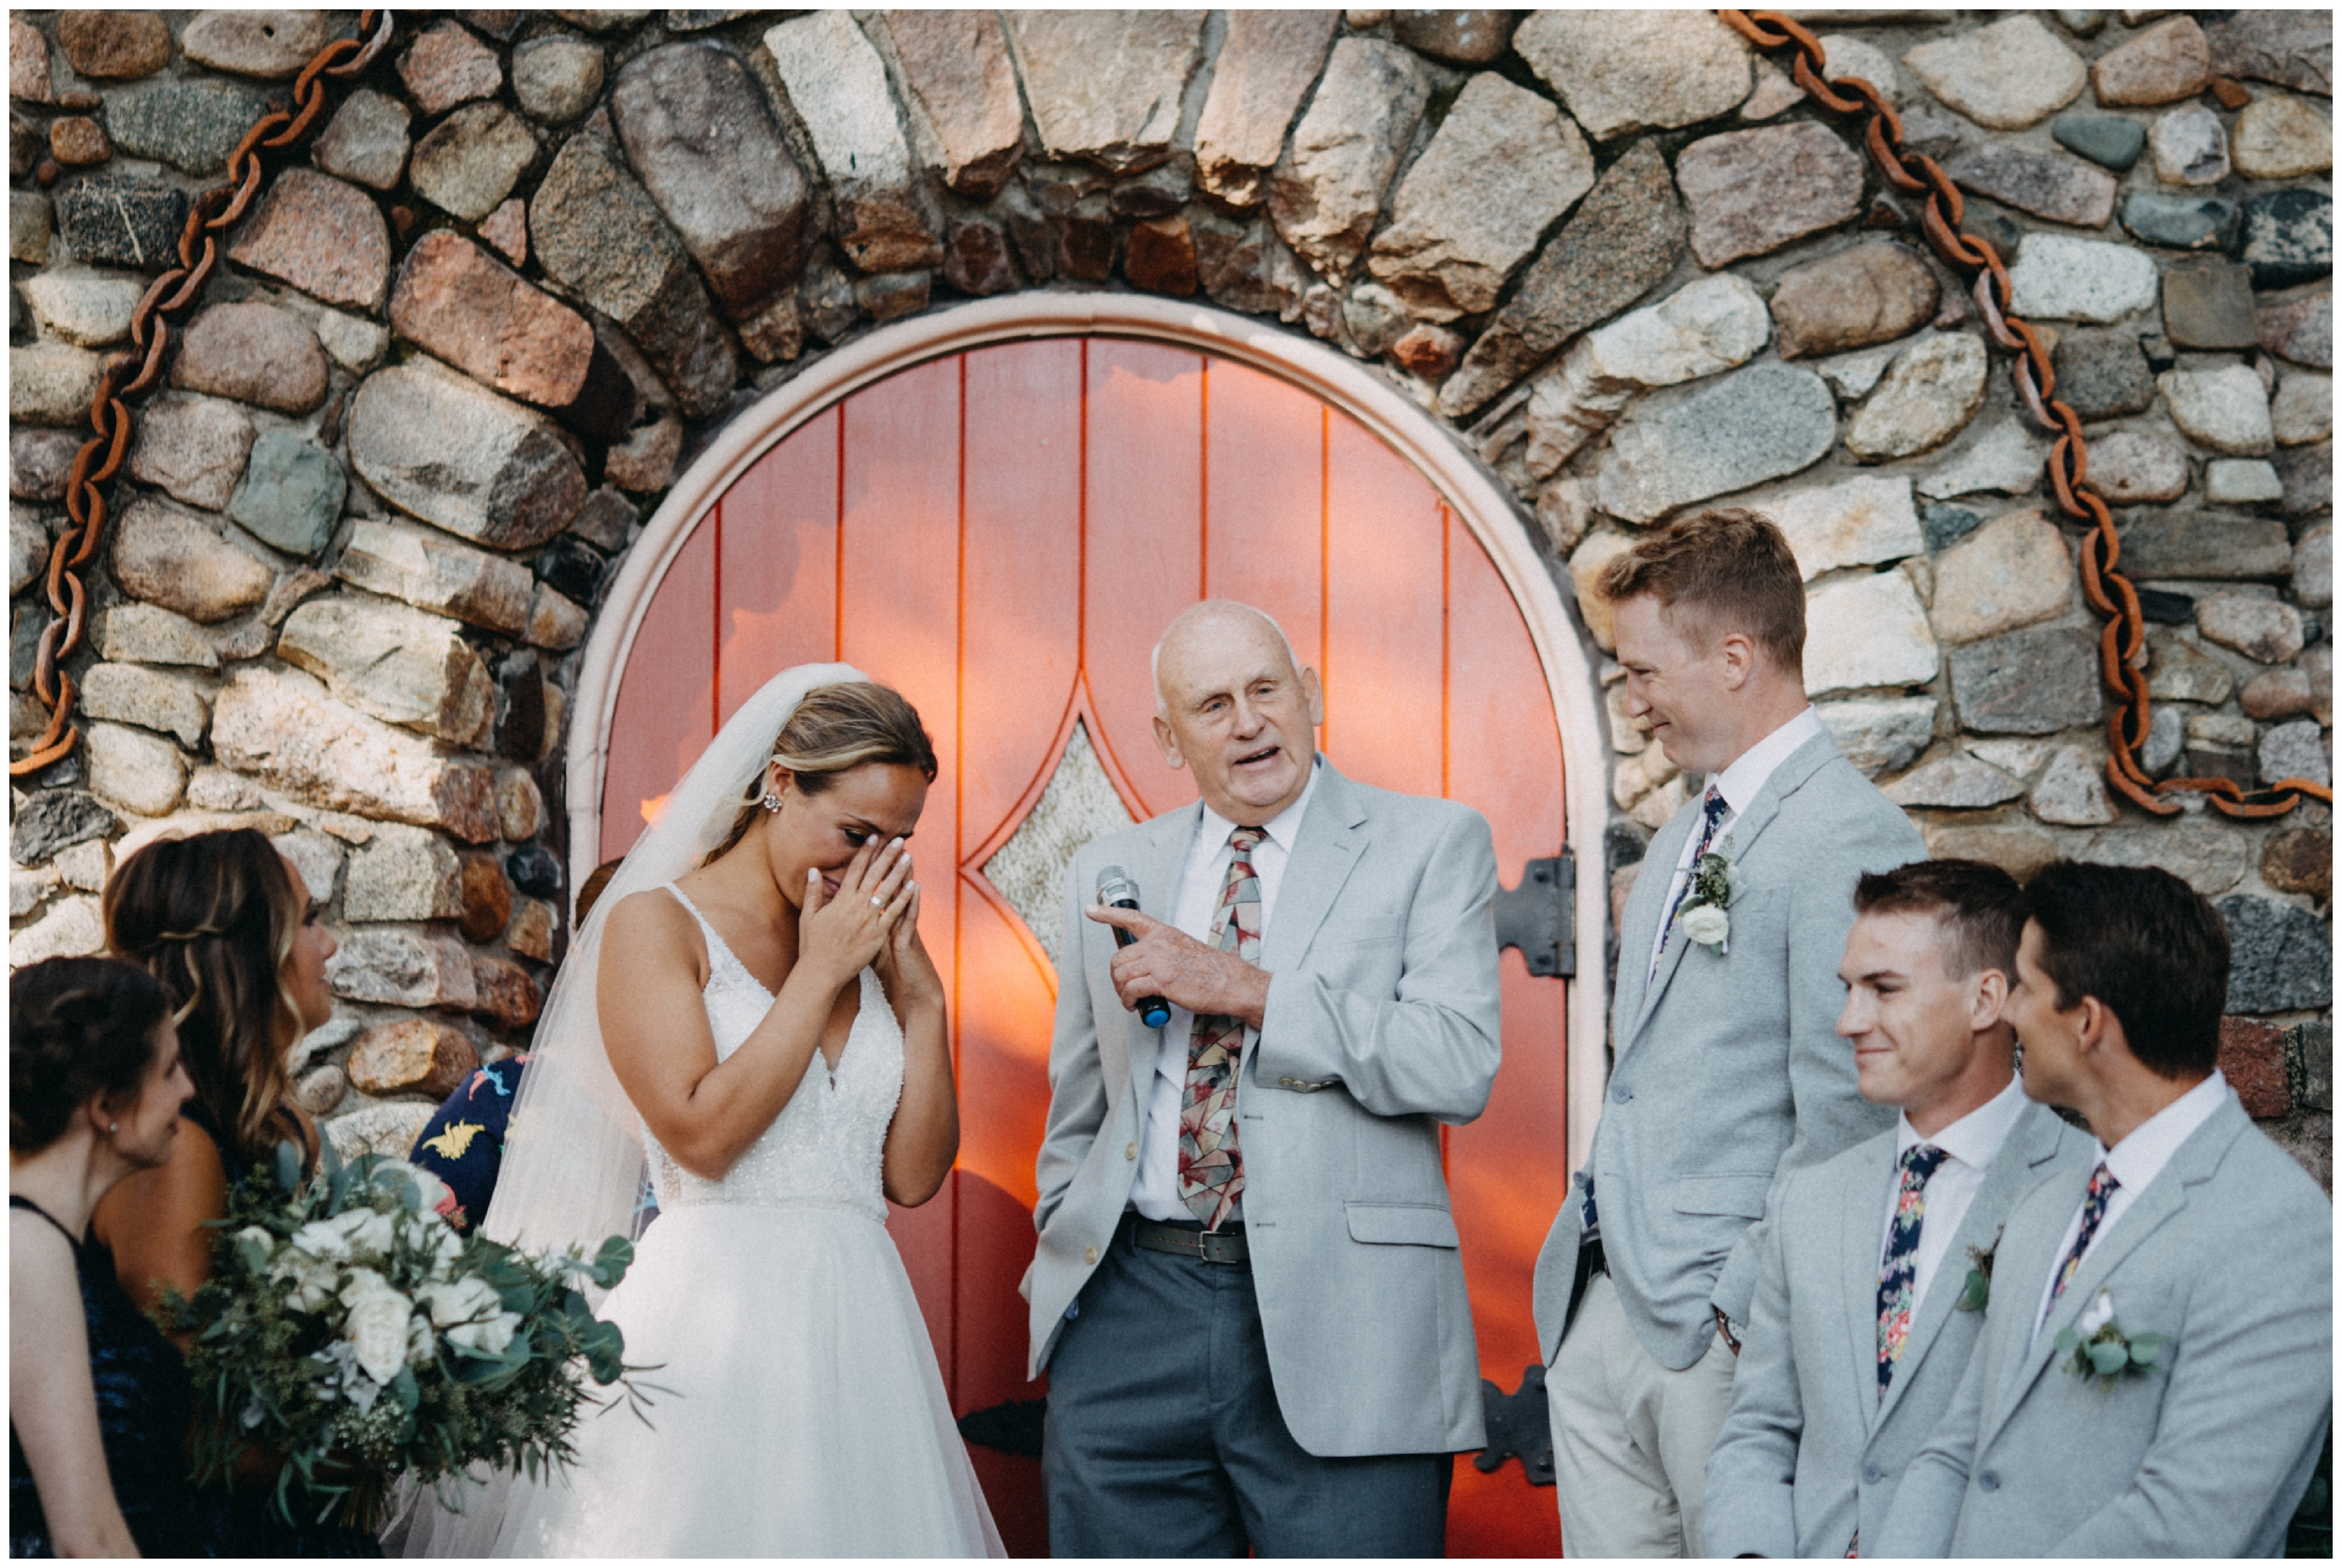 Emotional stone chapel wedding ceremony at Camp Foley